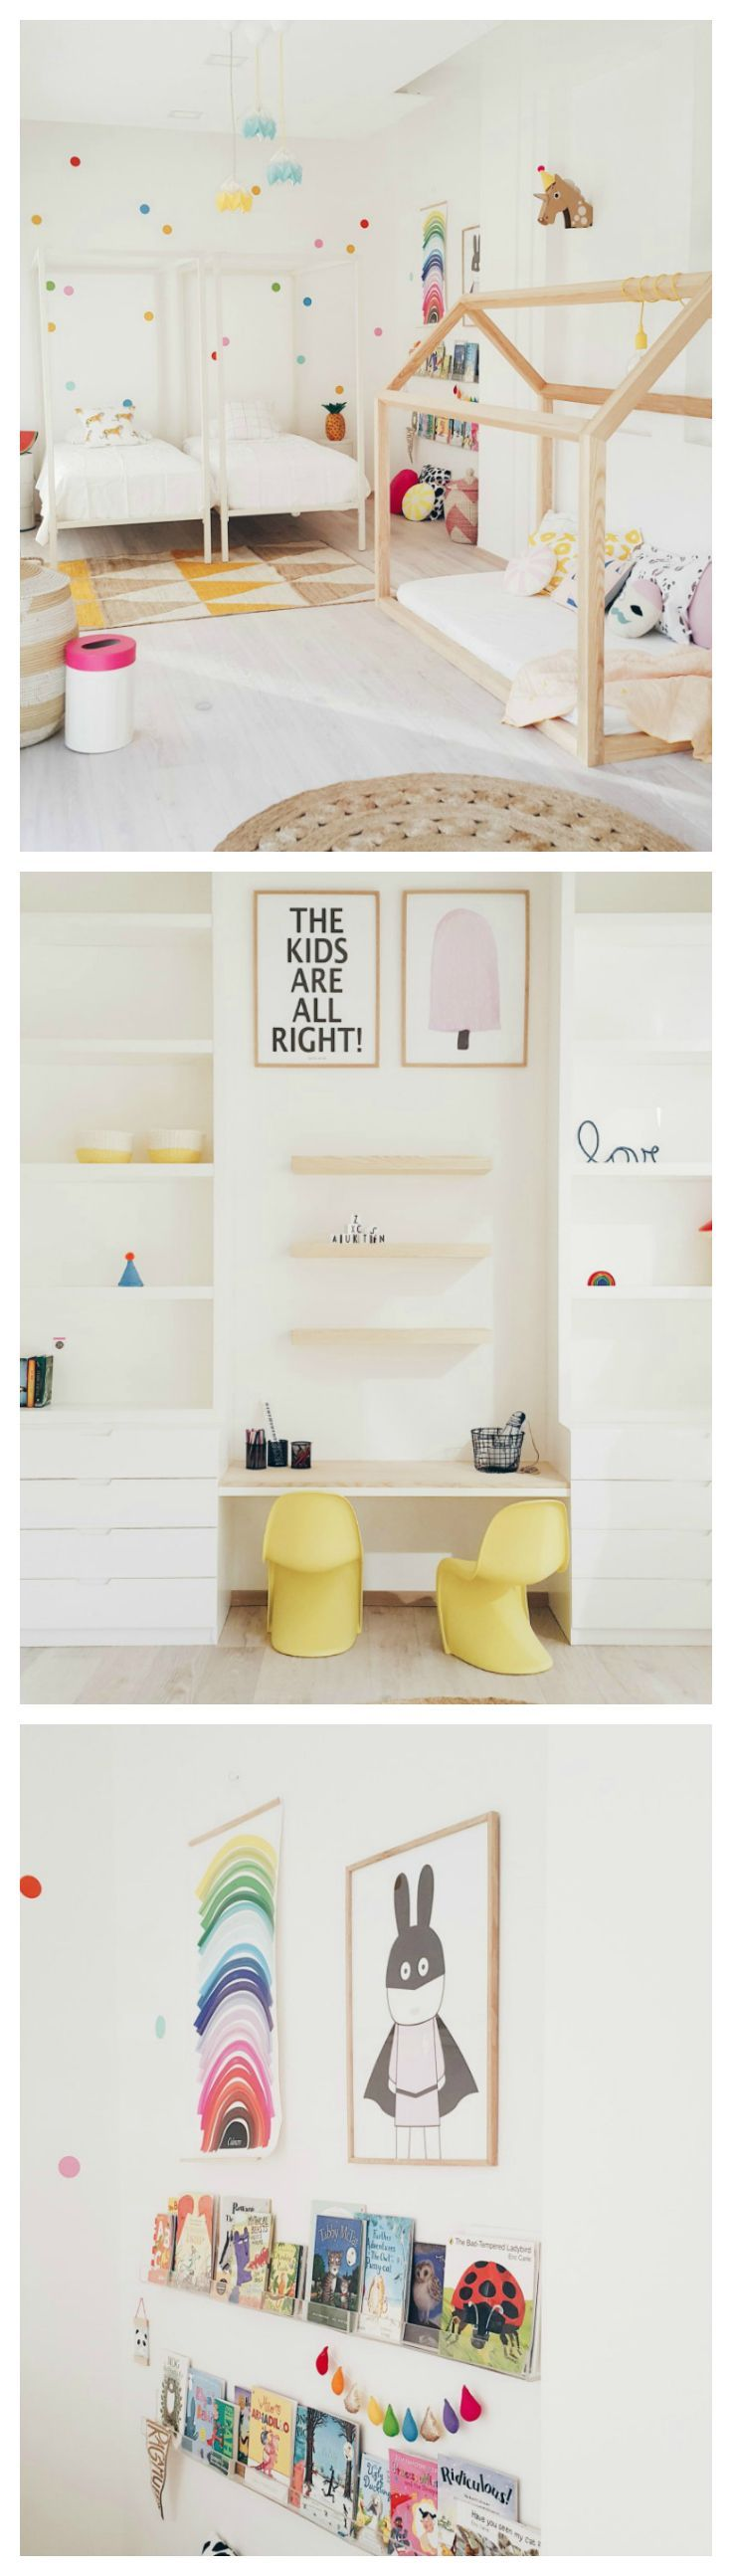 Chambre enfant gaie et colorée en tons pastels | Colourful shared room